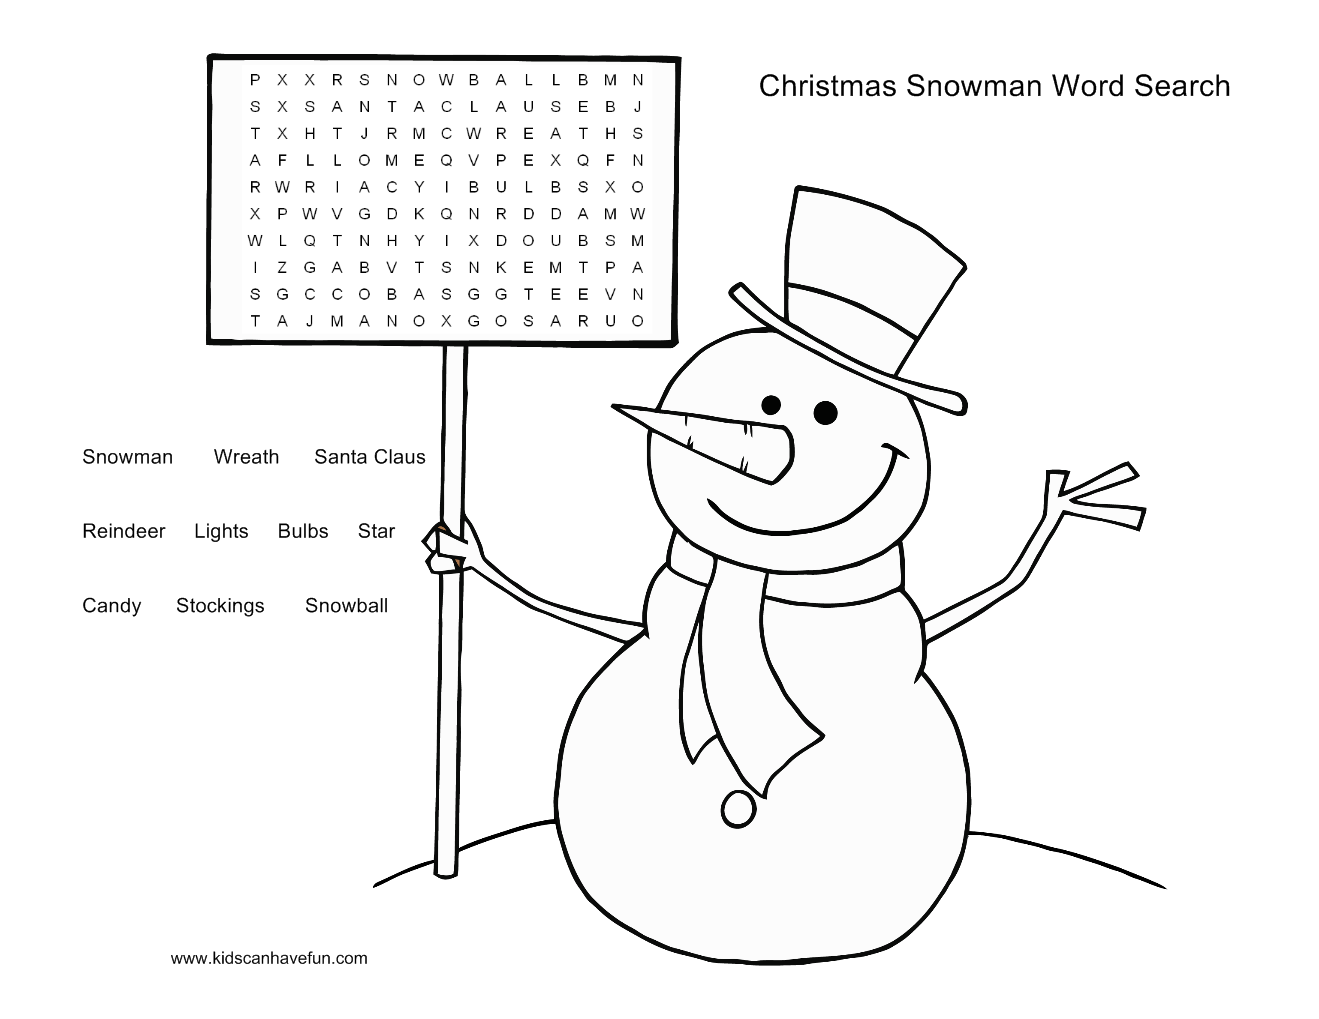 easy christmas word search printable 1 easy christmas word search ...